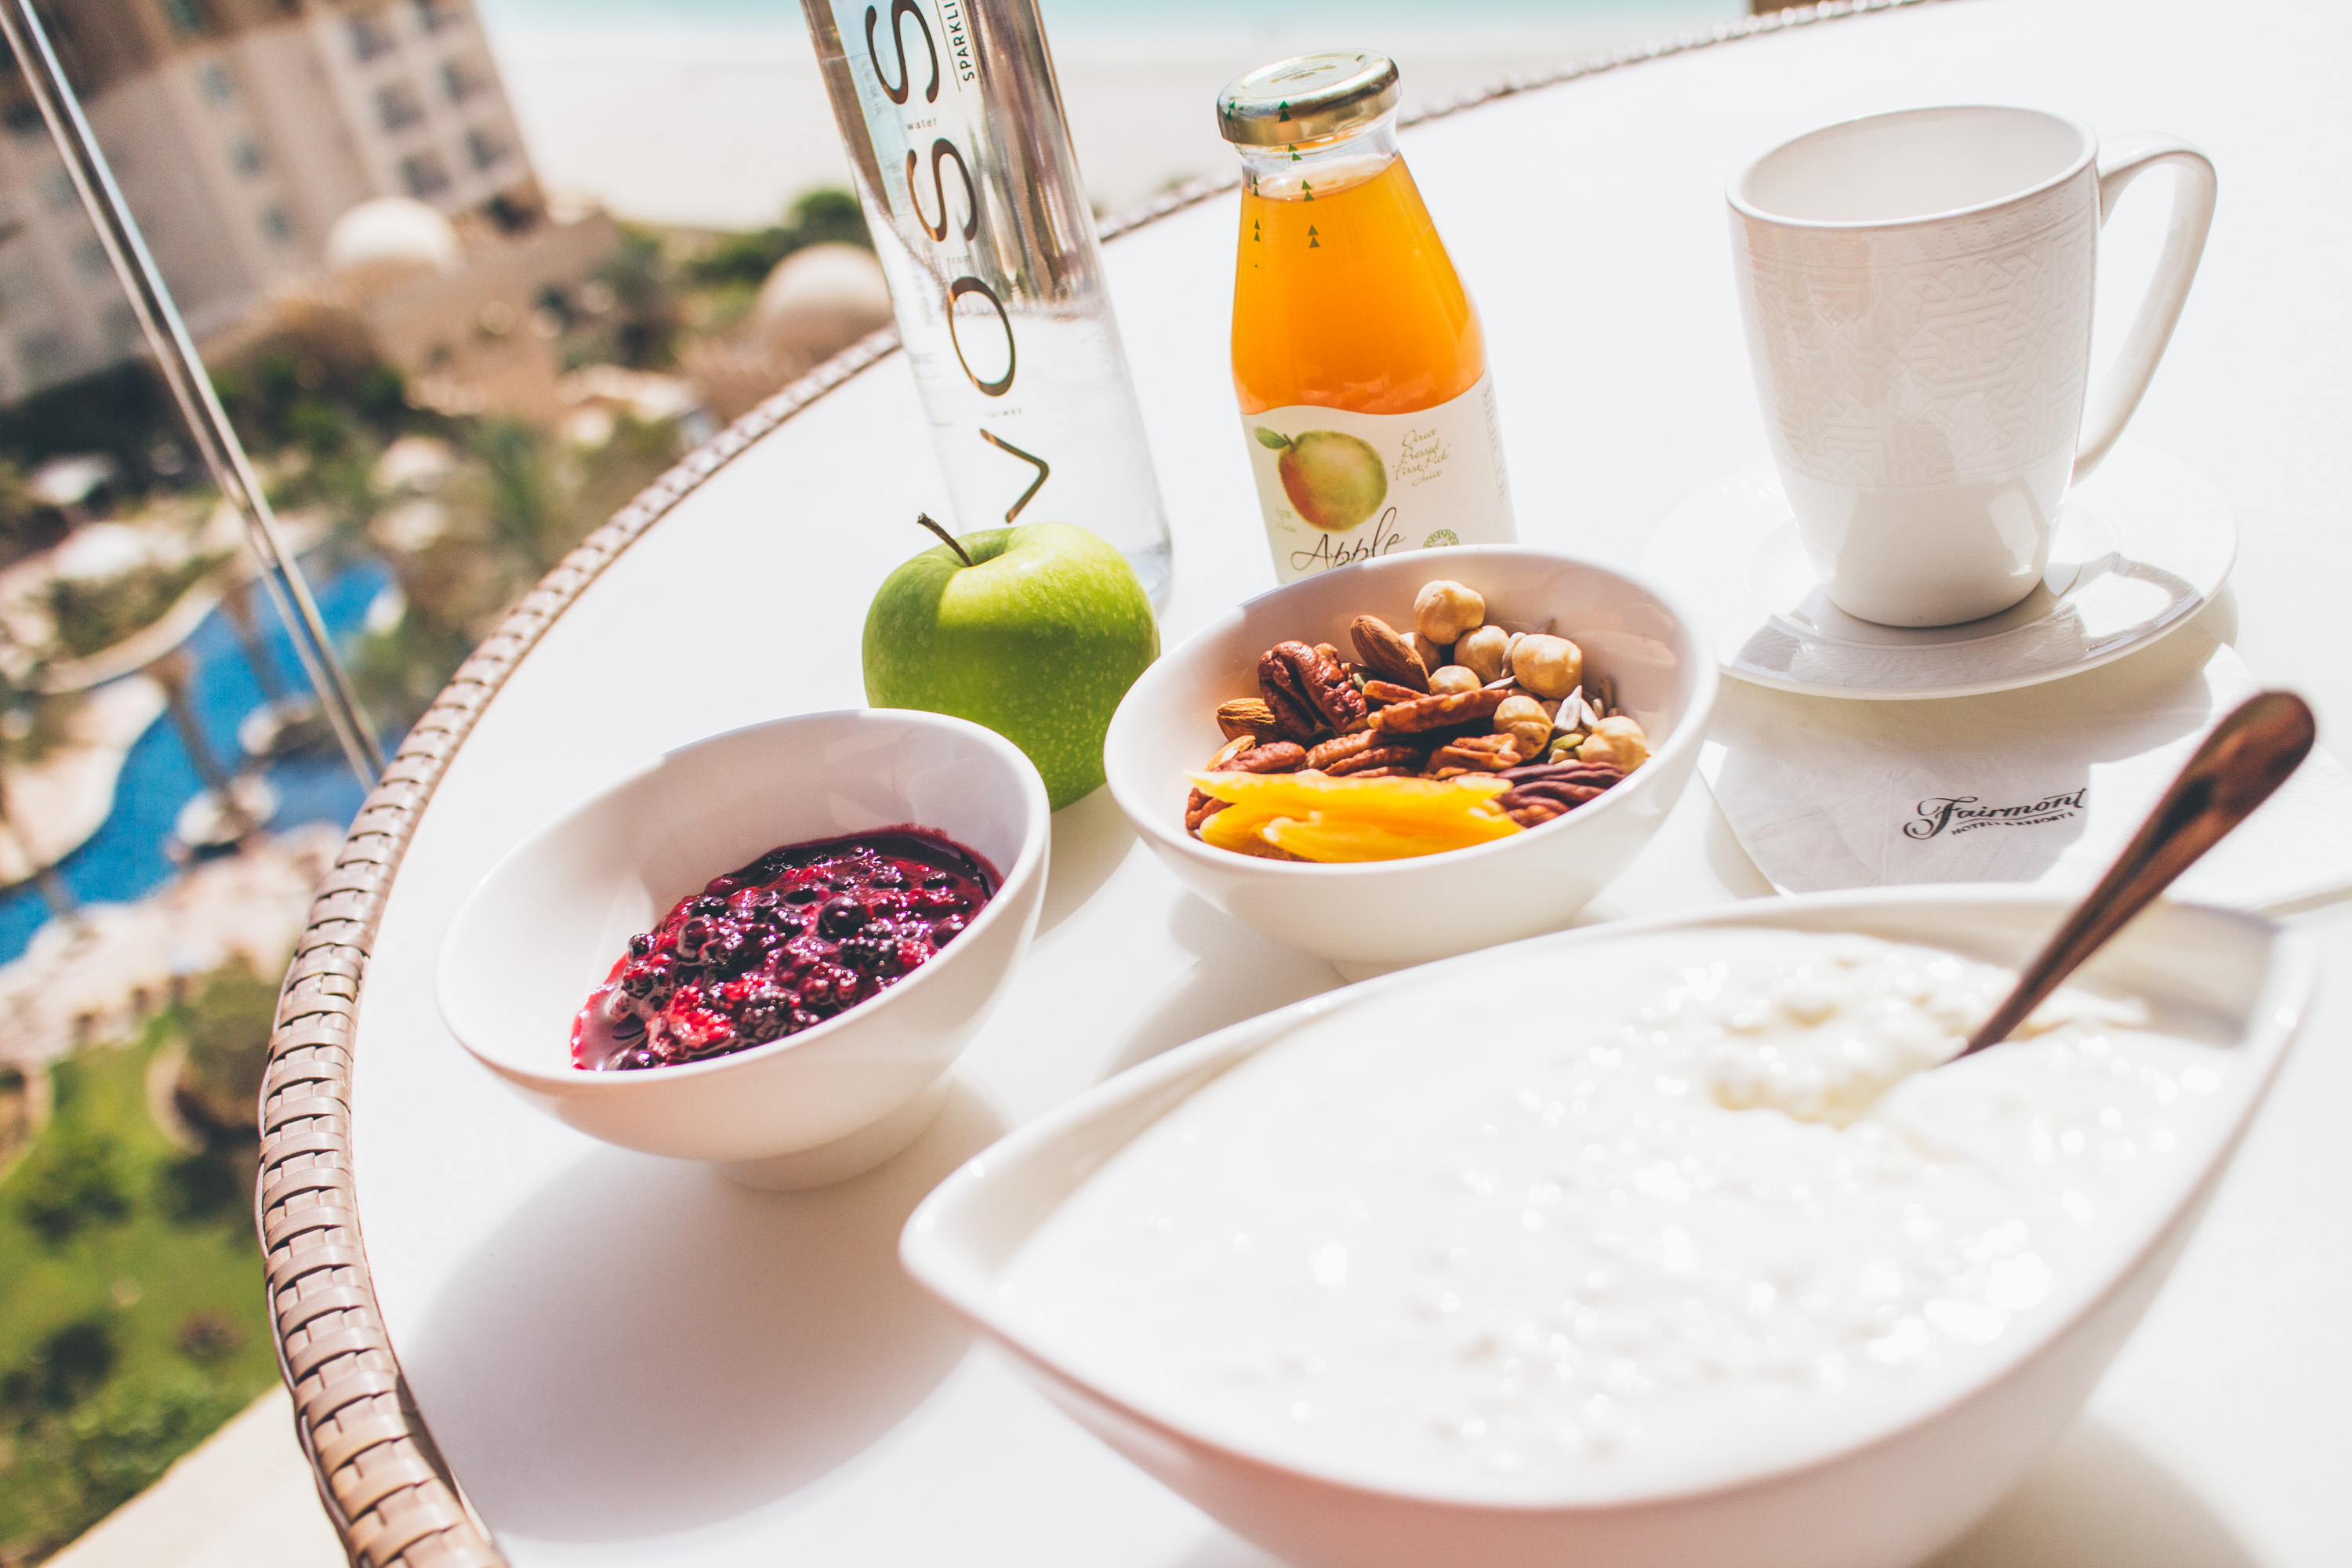 Andrea_Berlin_Breakfast_Fairmont_the_palm-2303